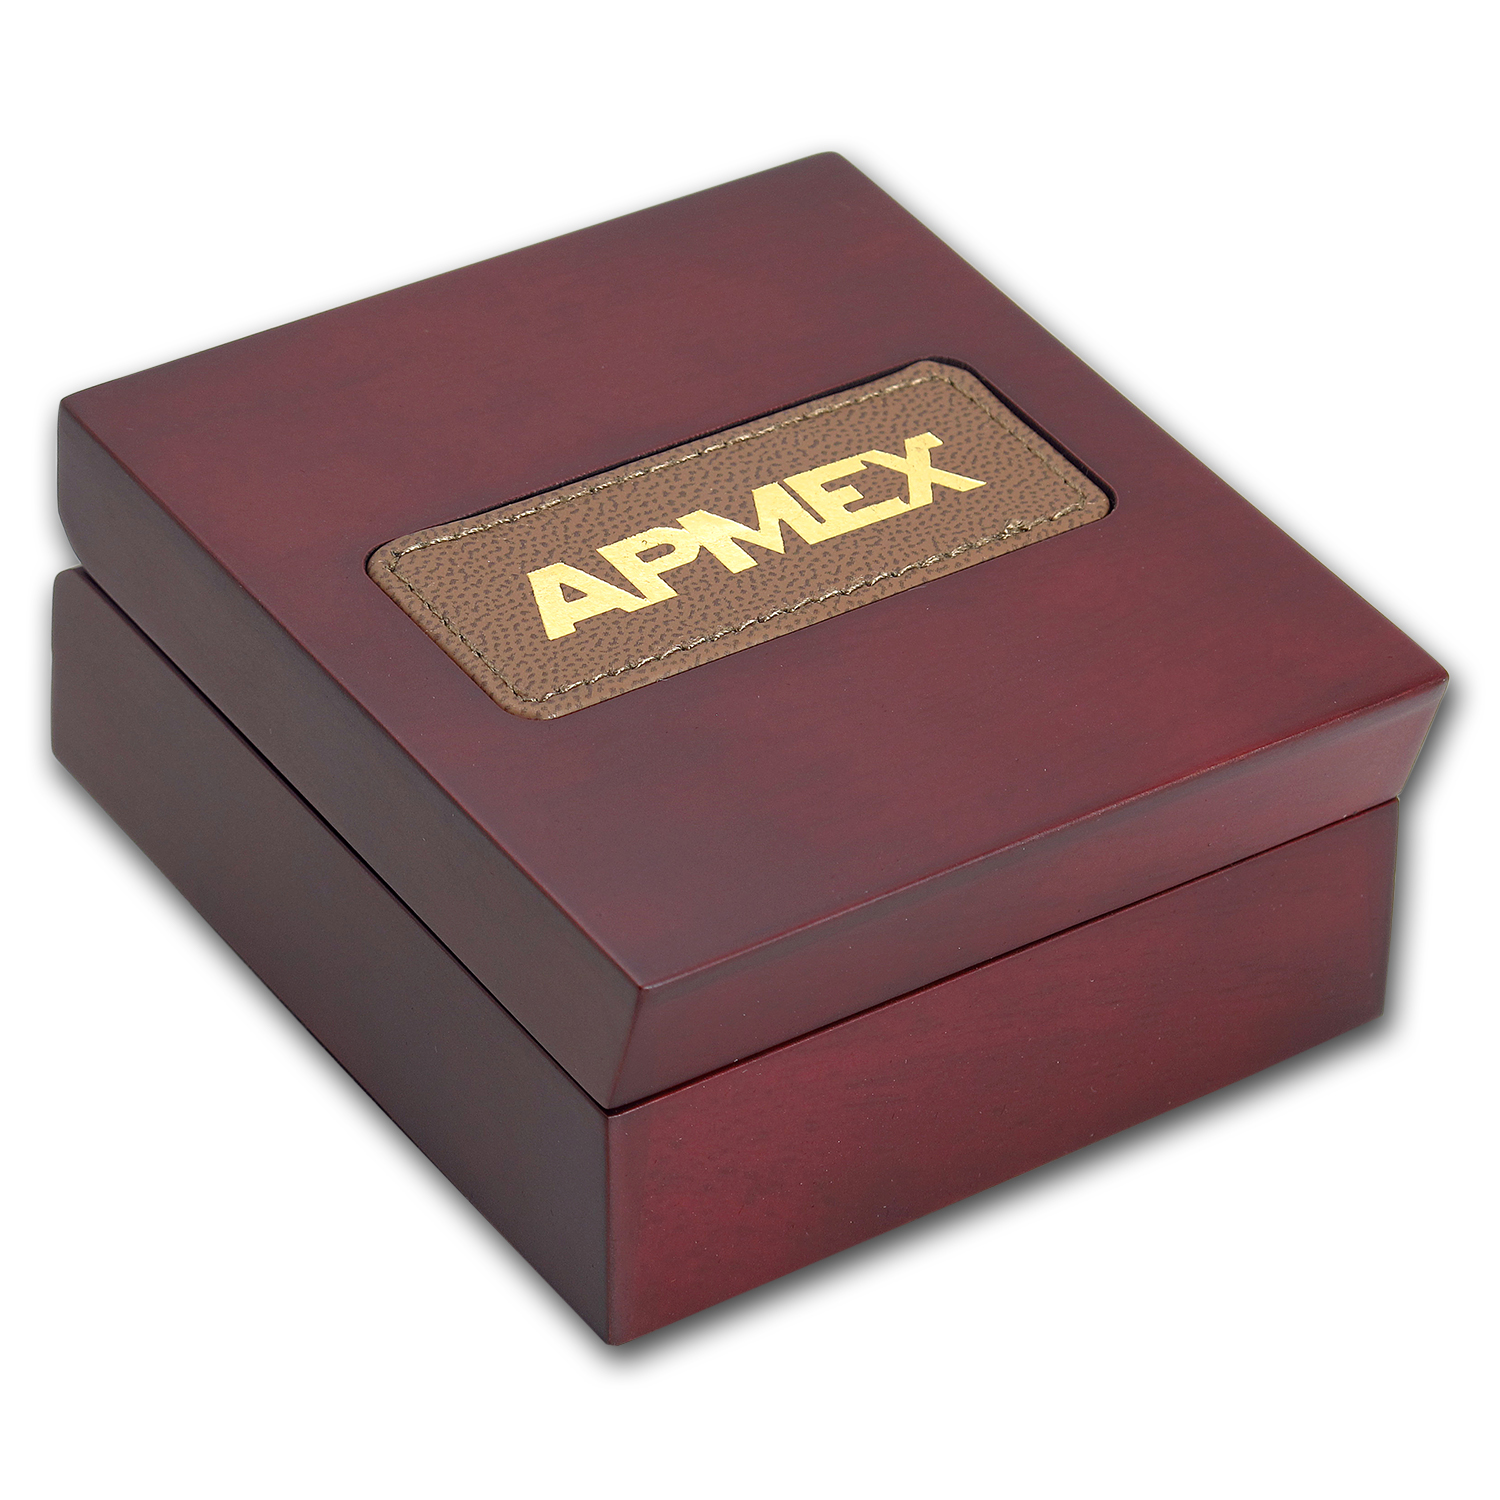 APMEX Wood Gift Box - 1/10 oz Perth Mint Gold Coin Series 1